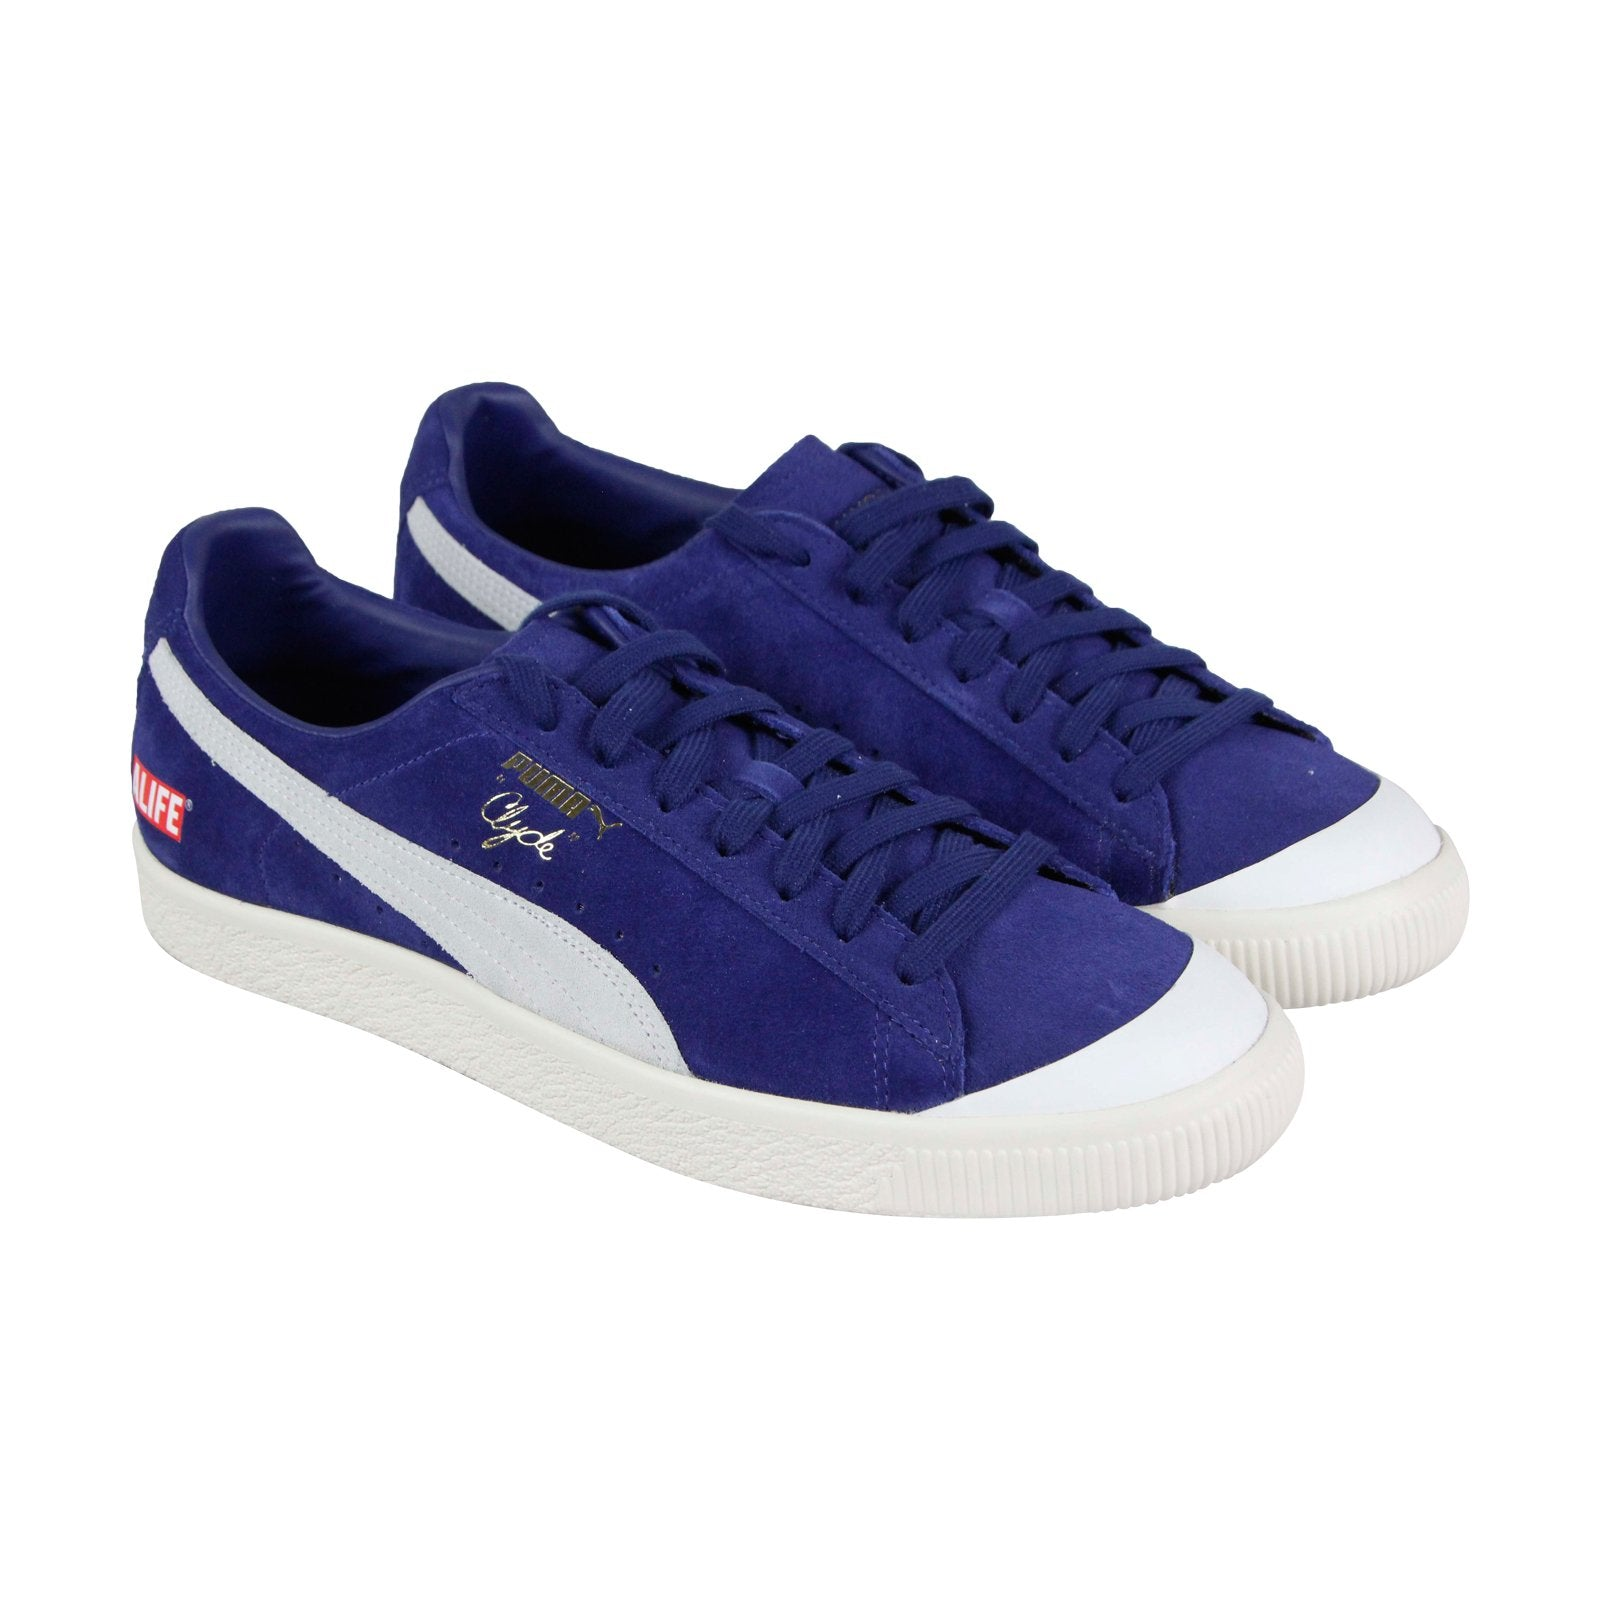 huge selection of 7afd0 5364b Puma Clyde Rt Alife Mens Blue Suede Low Top Lace Up Sneakers Shoes